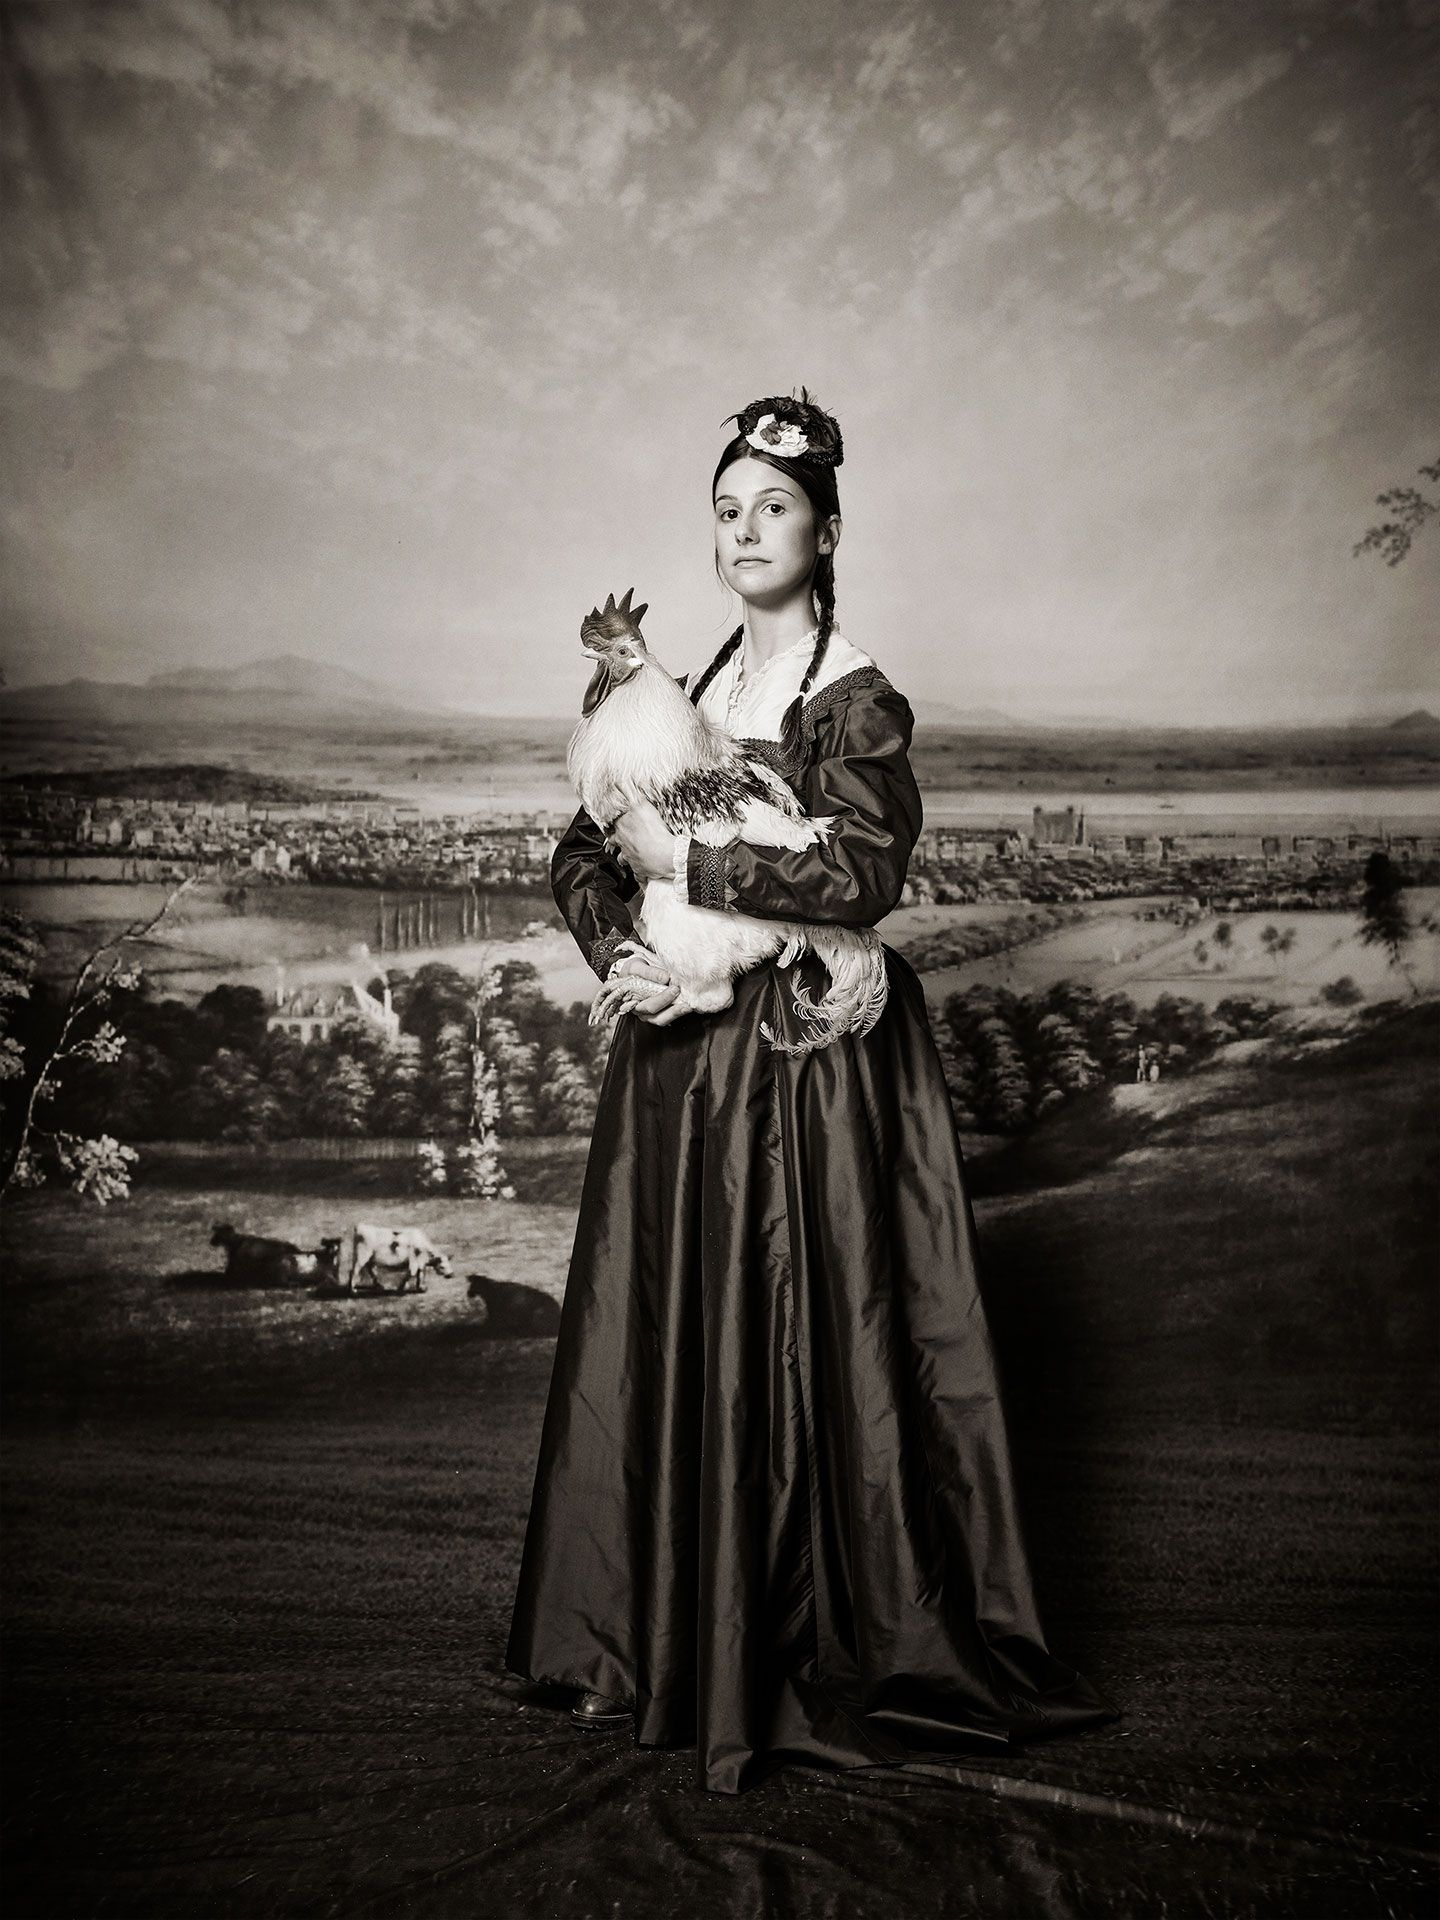 fake old picture of girl holding rooster for SPCA 150th anniversary by Jocelyn Michel